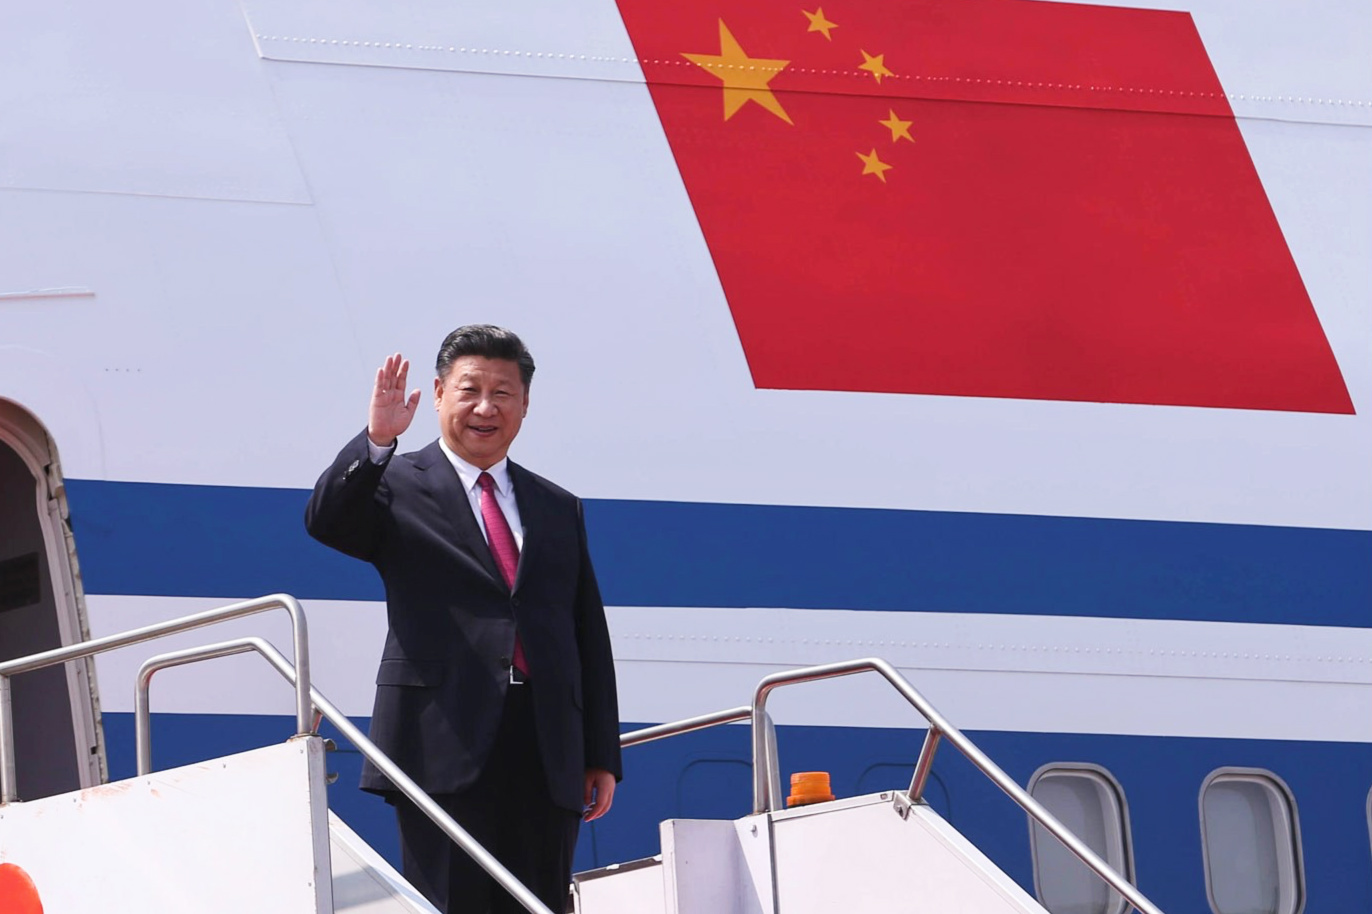 Xi returns to Beijing after state visit to Greece, BRICS summit